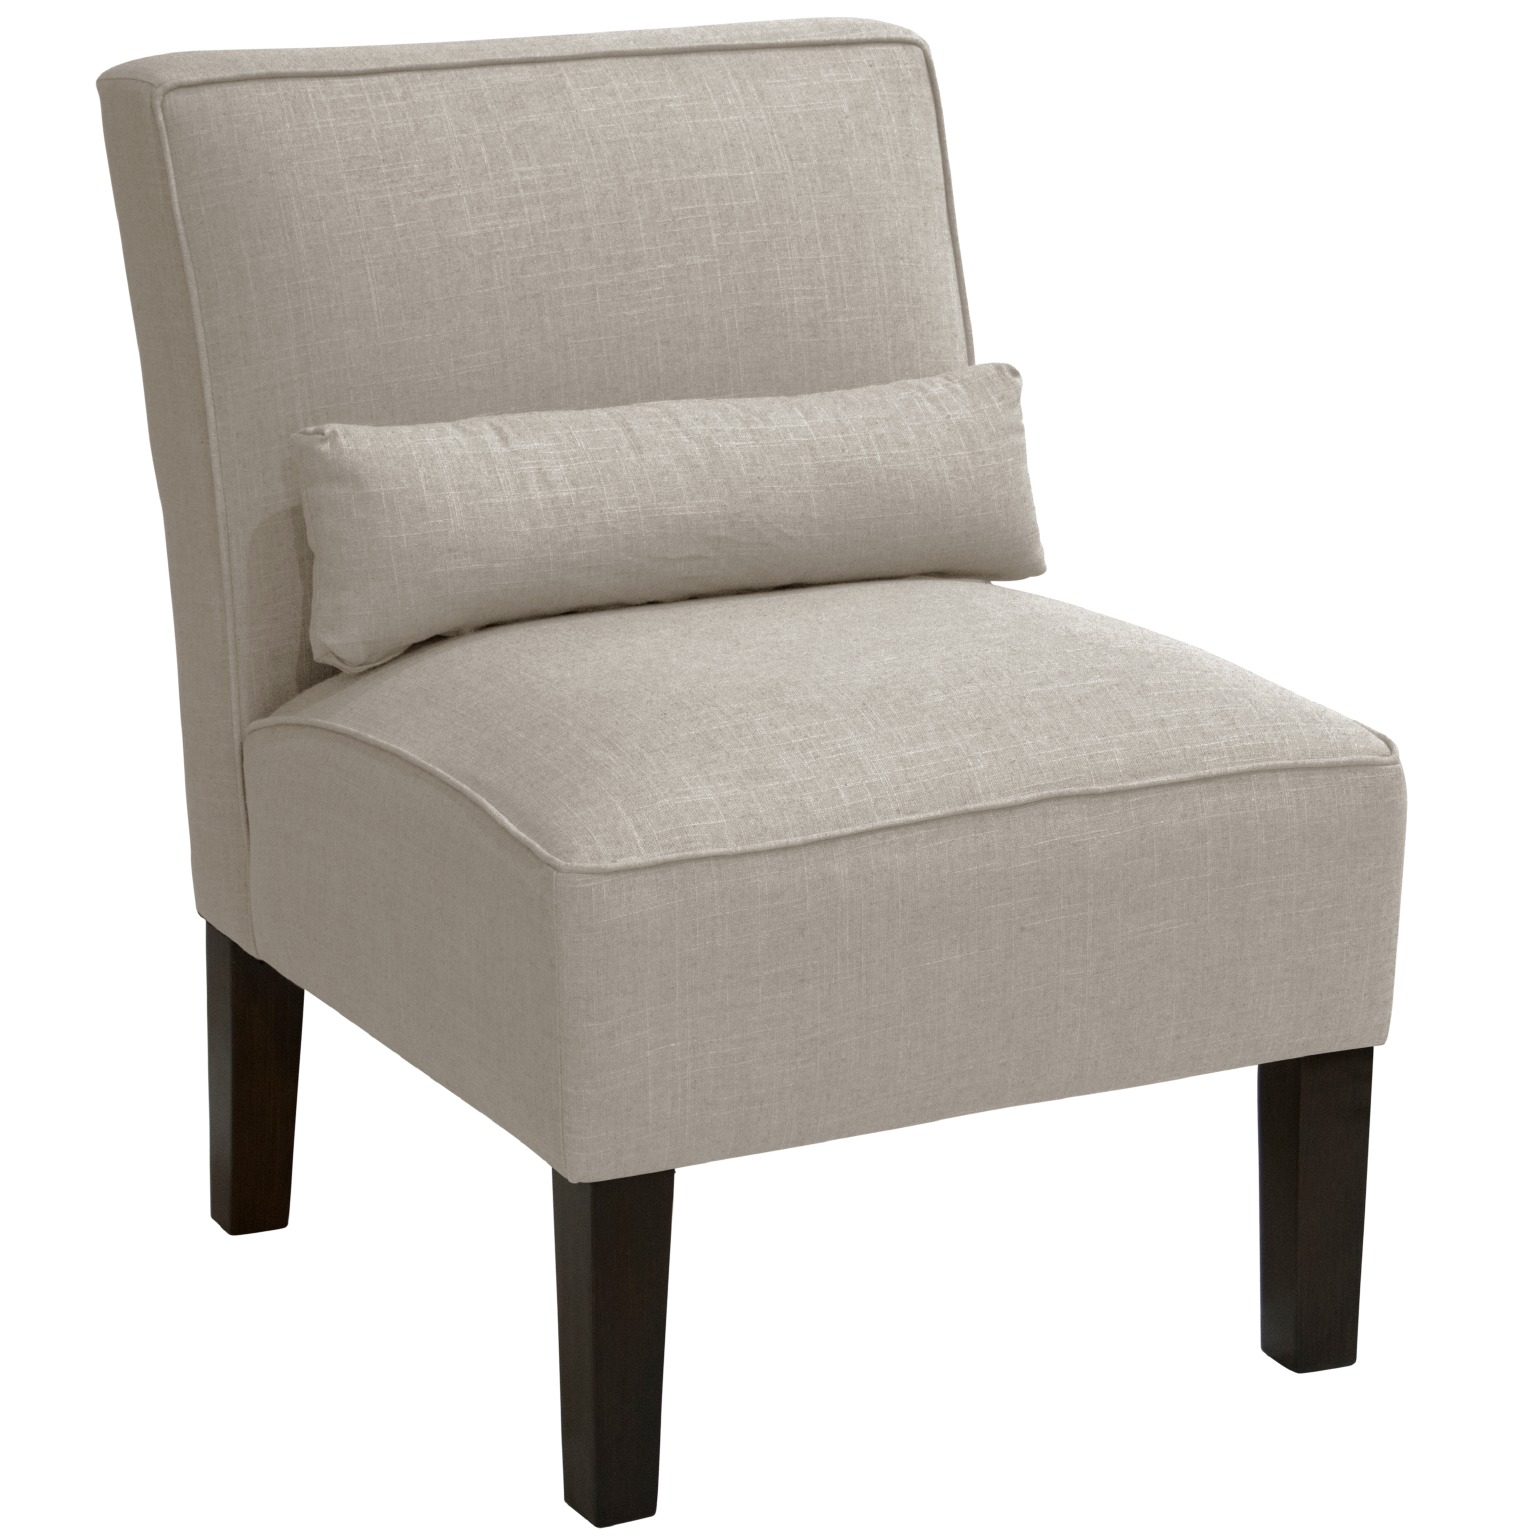 Maran Slipper Chair, Beige